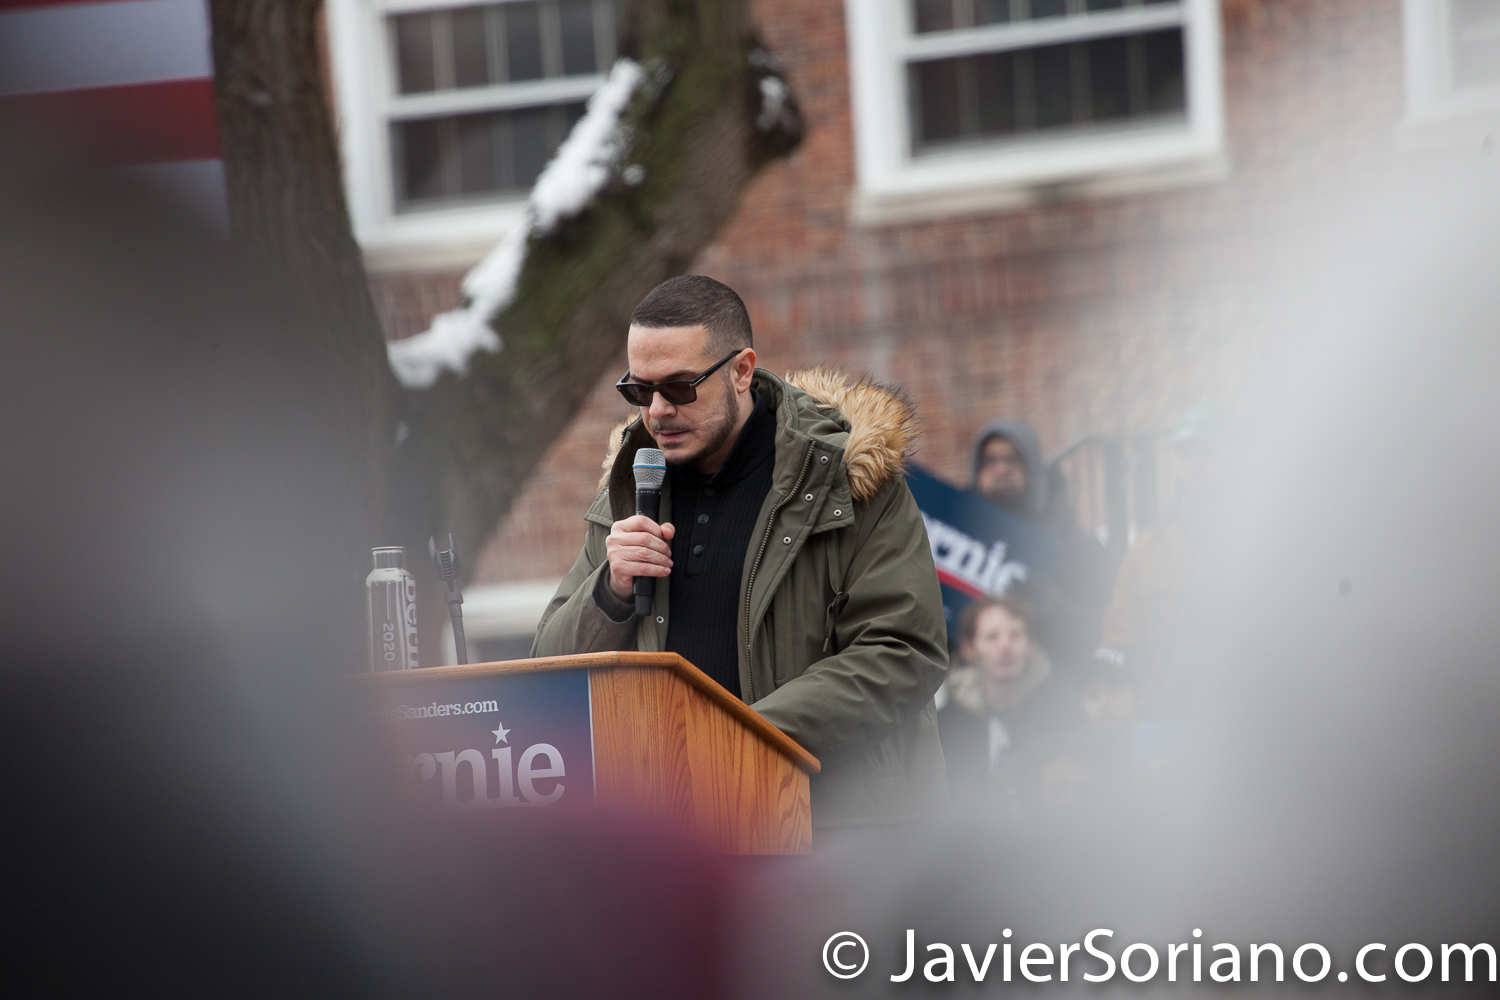 Saturday, March 2, 2019. Brooklyn College. Brooklyn, New York City. Journalist and activist Shaun King speaks to the more than 10 thousand supporters of U.S. Senator and presidential candidate Bernie Sanders. This was the first event of his 2020 presidential campaign. And although it was very cold, people were happy to be there at Brooklyn College. Photo by Javier Soriano/www.JavierSoriano.com